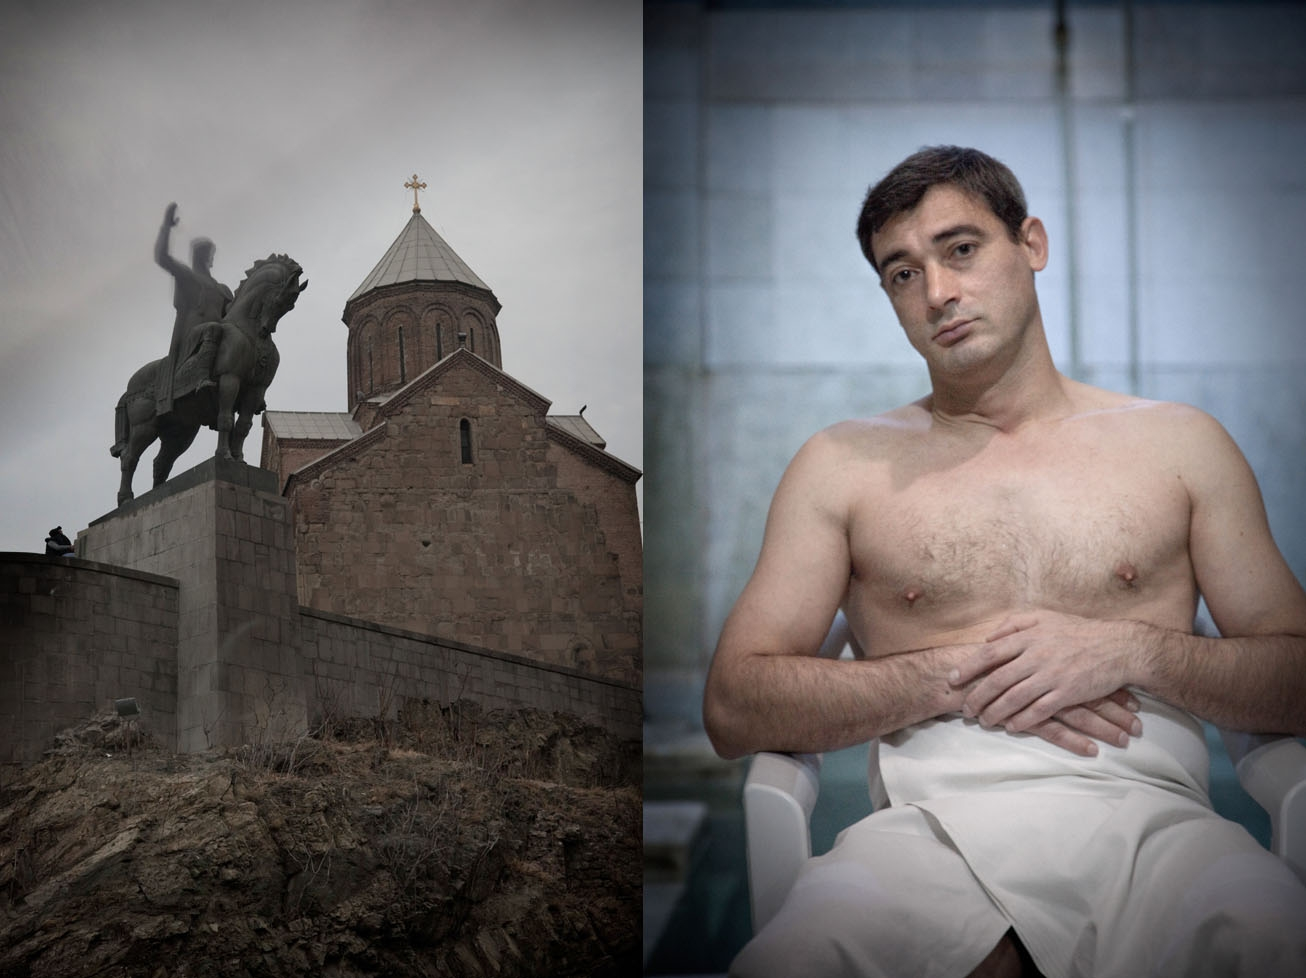 The statue of King Vakhtang Gorgasali overlooks the bath district (l). Masseur Emzar Gassimov works at the bathhouse Sulfur.